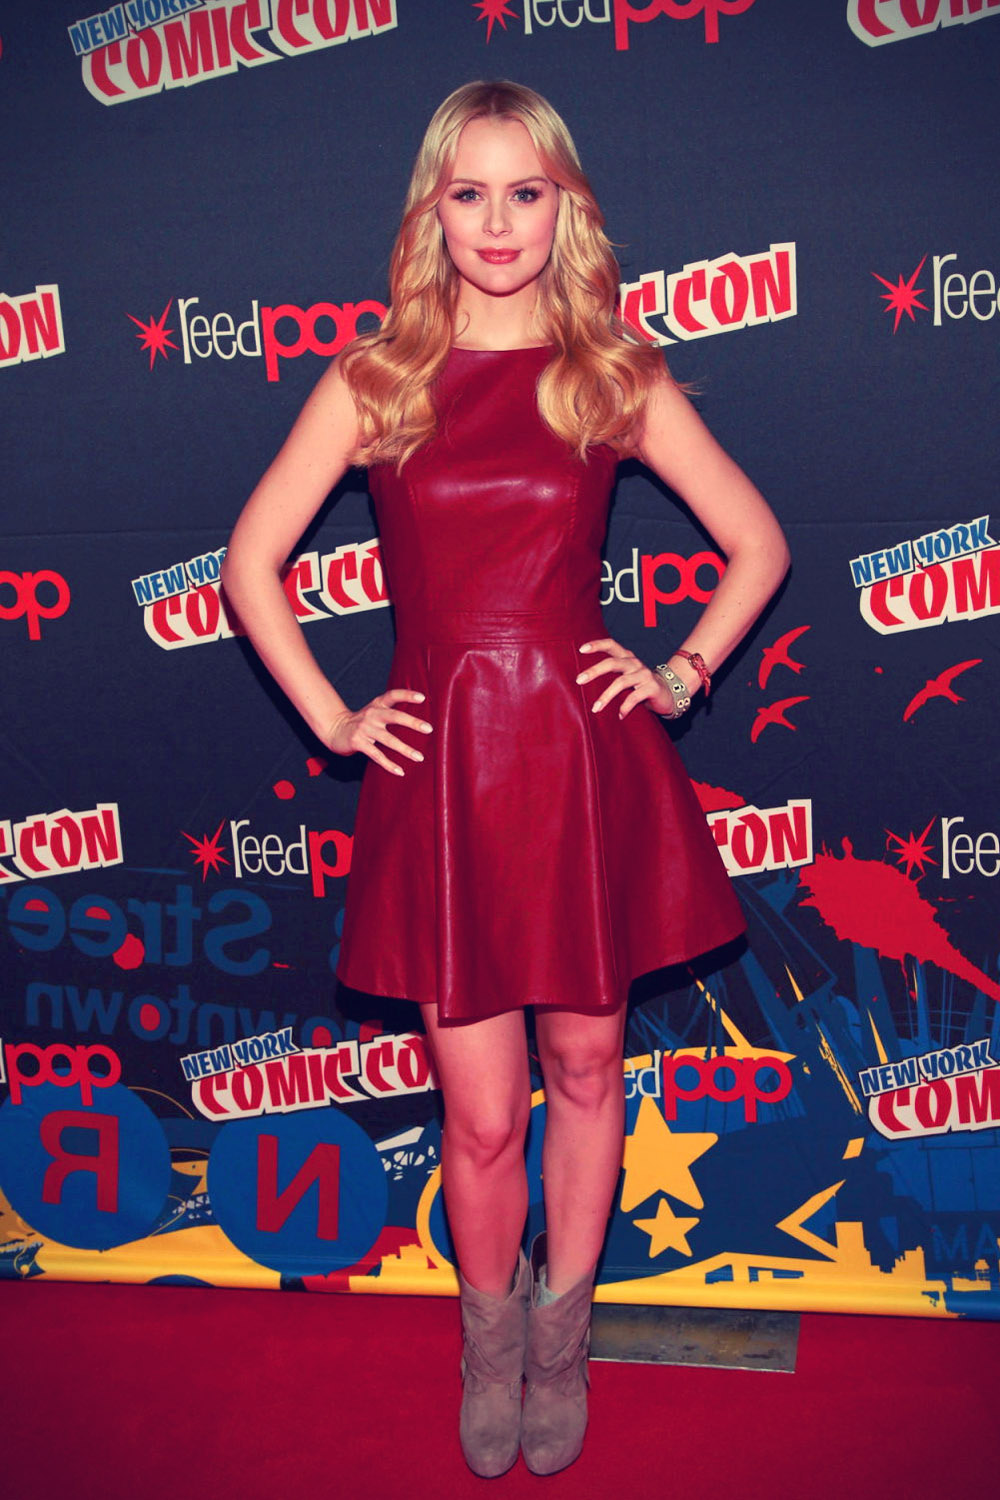 Helena Mattsson at the 2012 New York Comic Con